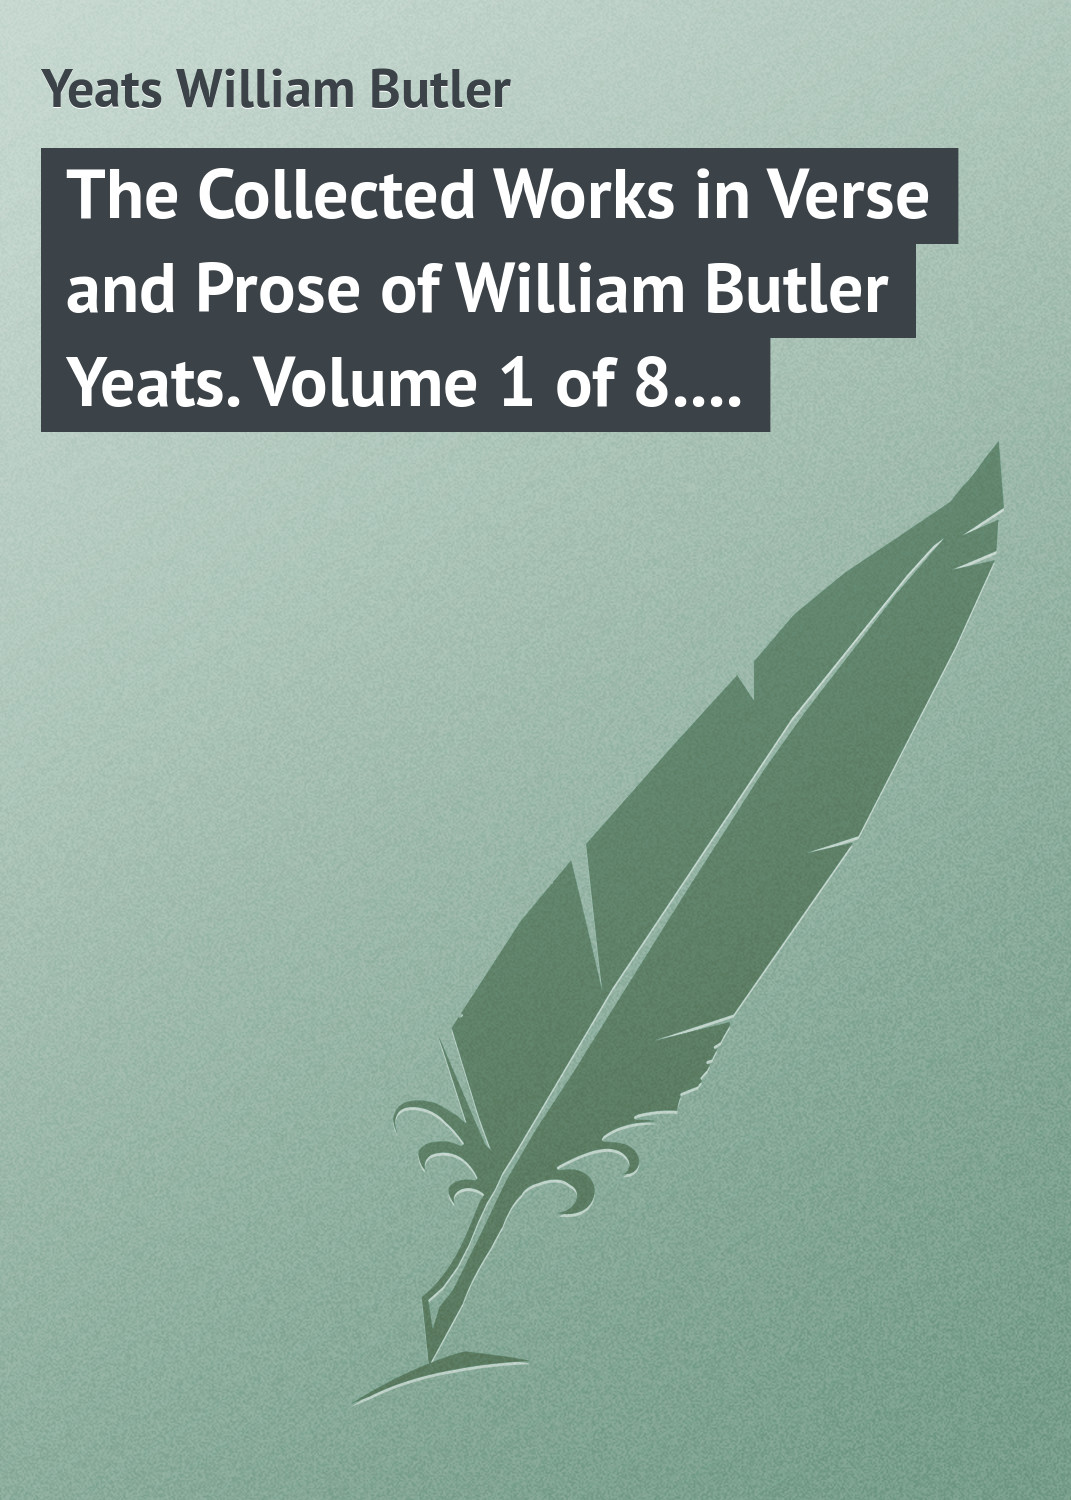 William Butler Yeats The Collected Works in Verse and Prose of William Butler Yeats. Volume 1 of 8. Poems Lyrical and Narrative baudelaire charles the poems and prose poems of charles baudelaire